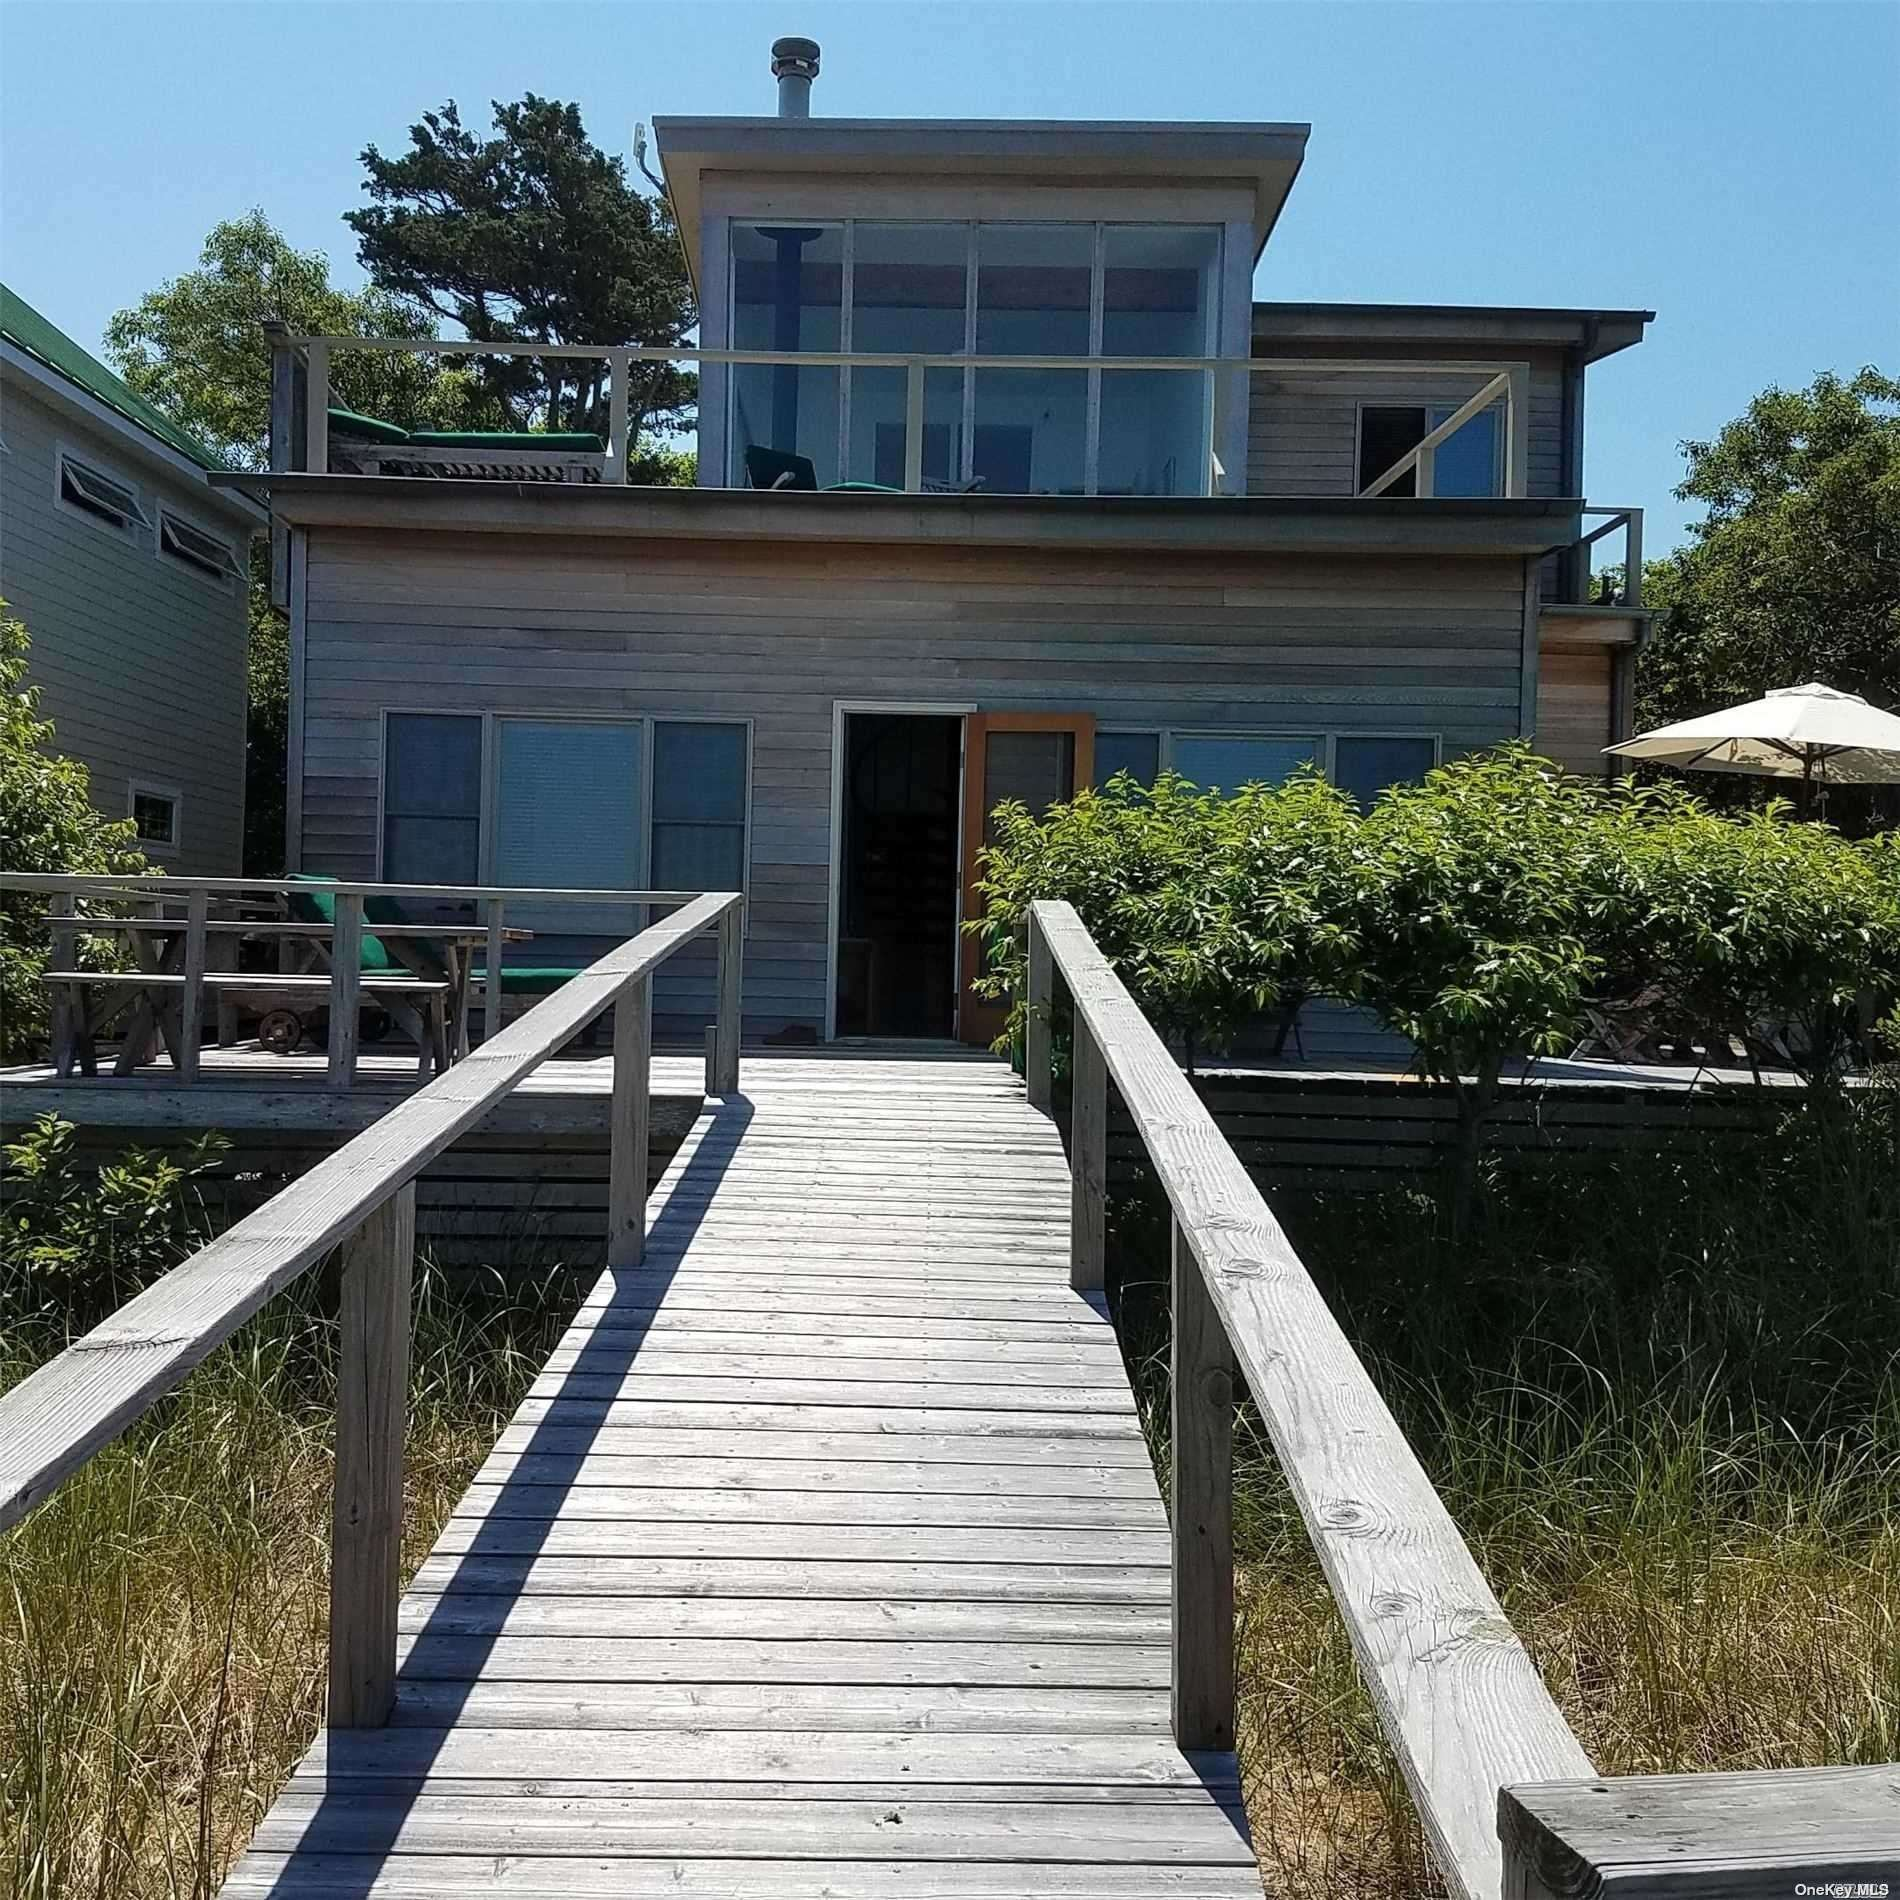 FABULOUS COMP. BEACH HOUSE IN WATER ISLAND. THE DOWN STAIRS HAS LIV/DIN/KIT COMBO 2 BEDROOMS AND 1 BATH, IT HAS HIGH CEILING AND GREAT VIEWS. UP-STAIRS THERE IS A BEDROOM WITH A SITTING AREA PLUS A BALONIE AND 1/2 BATH. THIS AREA ALSO HAS AN OUTDOOR DECK WITH WONDERFUL VIEWS. IT'S ONE OF A KIND, NOT TO BE MISSED